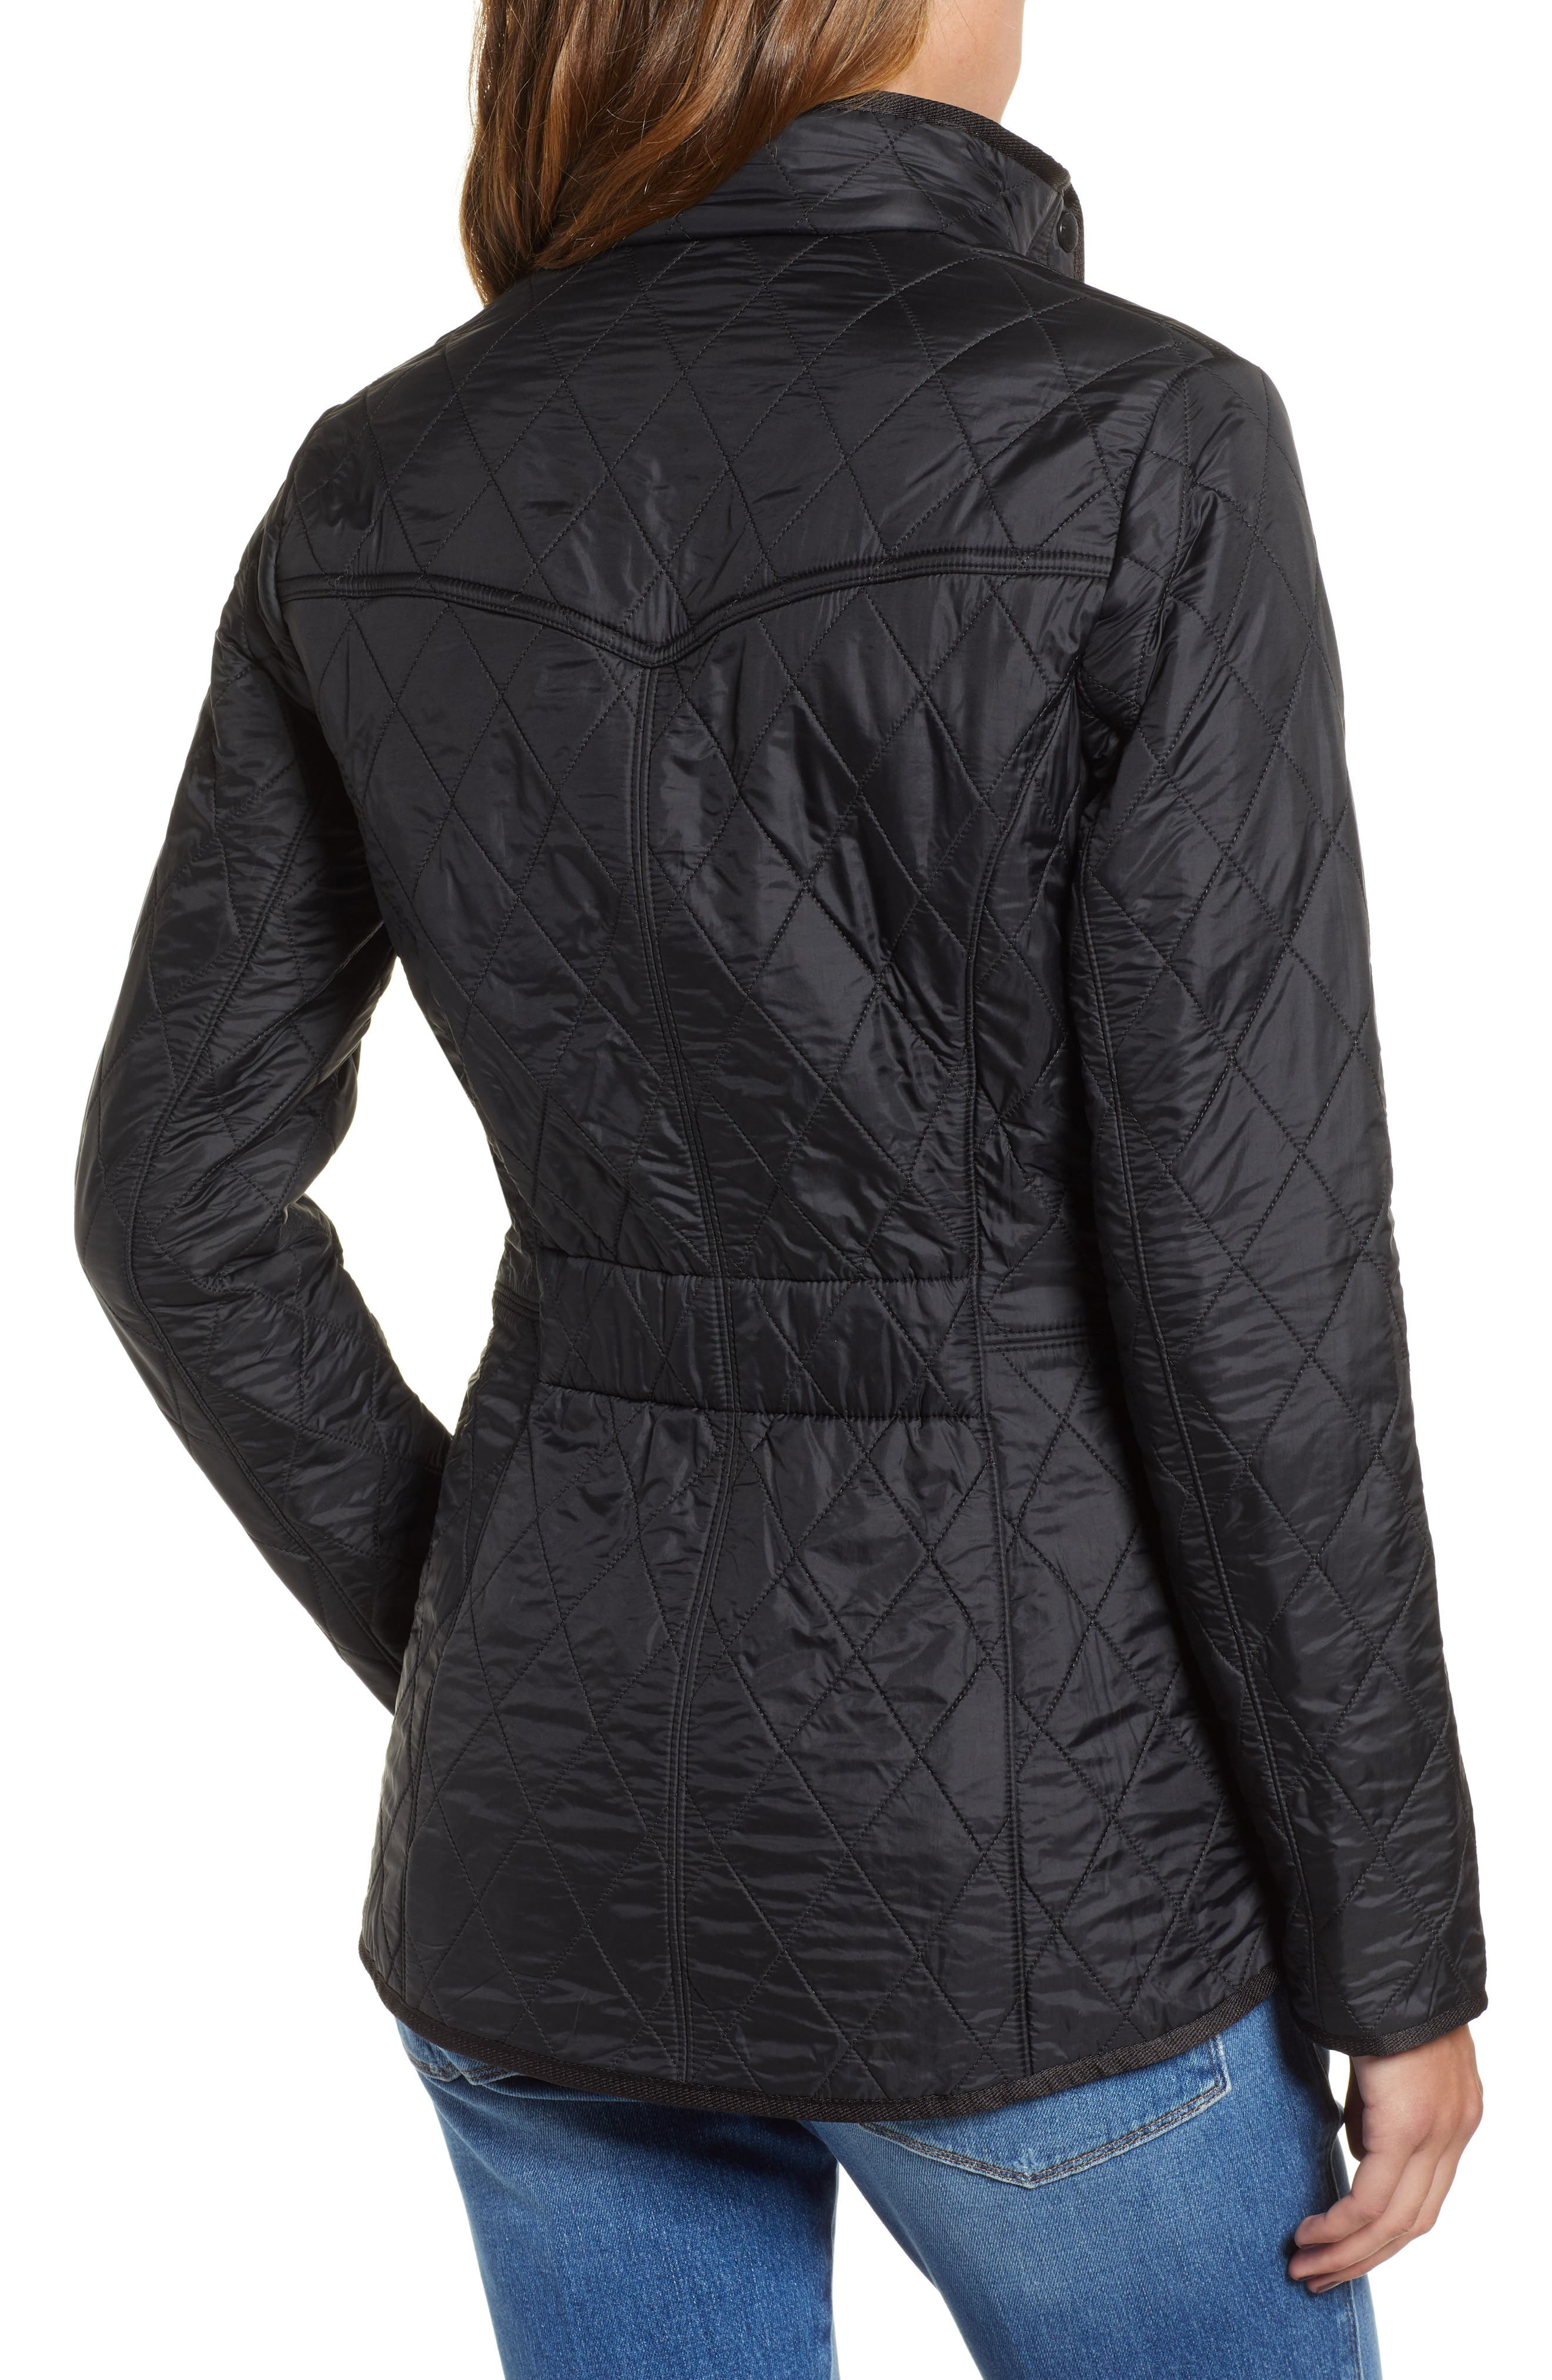 BARBOUR, 'Cavalry' Quilted Jacket, Alternate thumbnail 2, color, 001